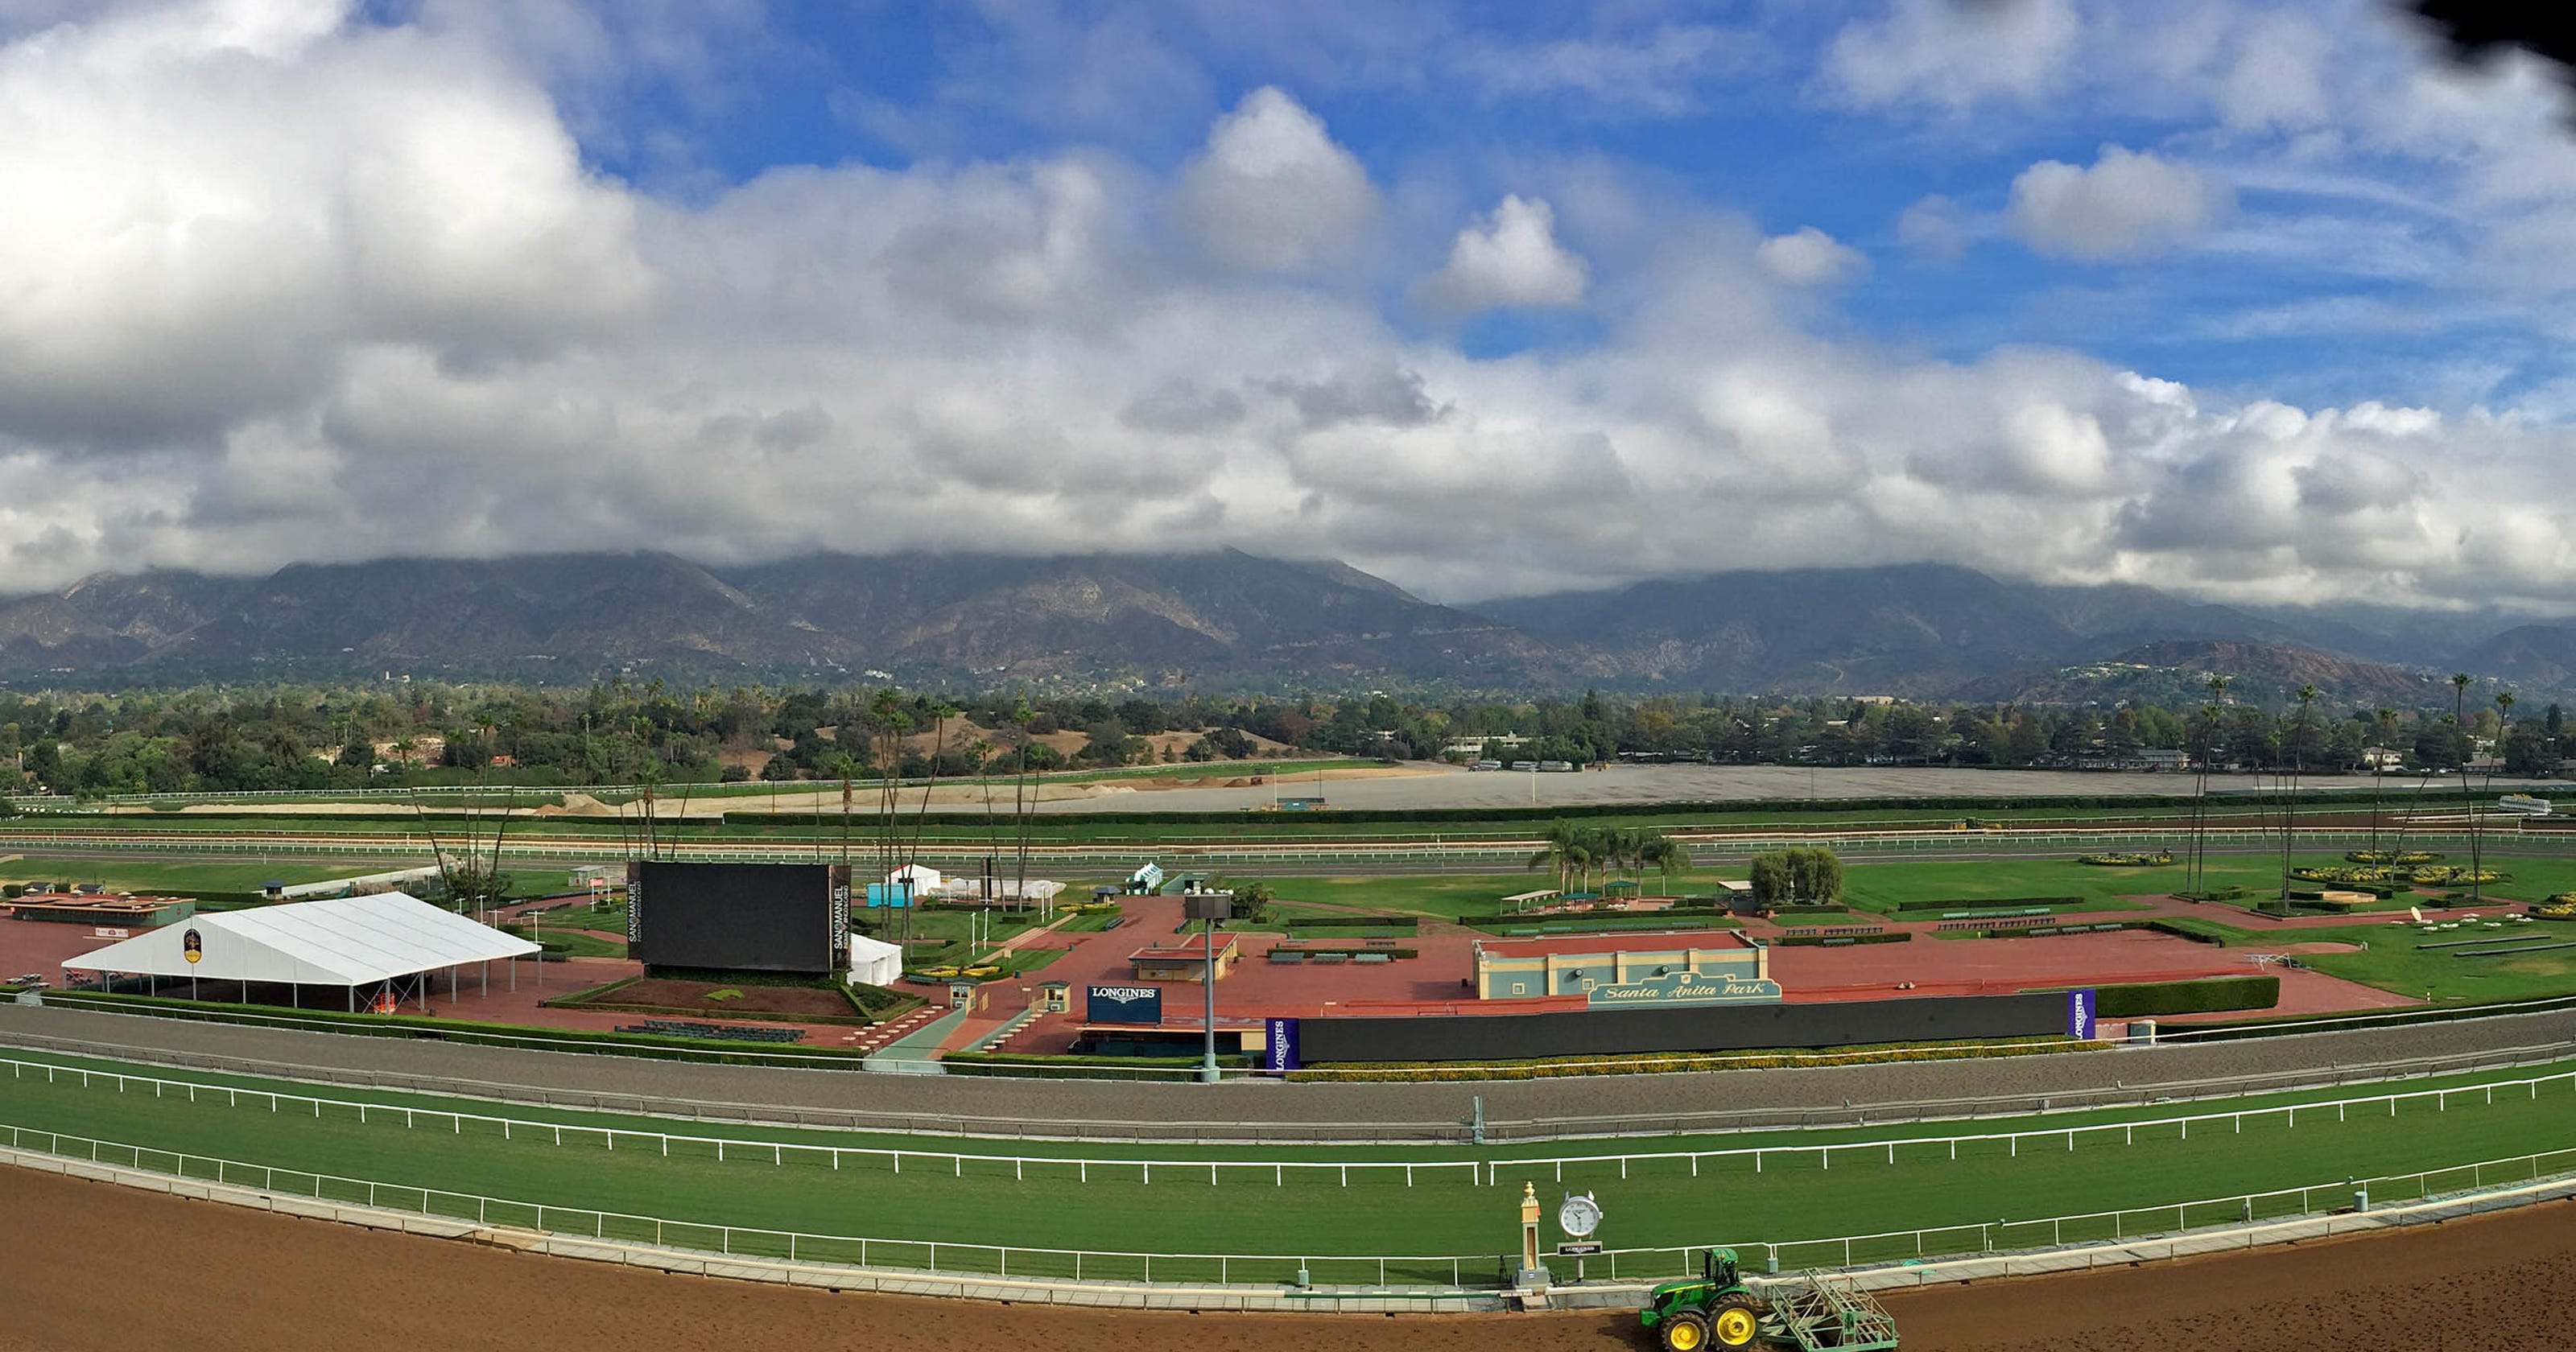 Santa Anita Horse Deaths Hall Of Fame Trainer Banned From Track